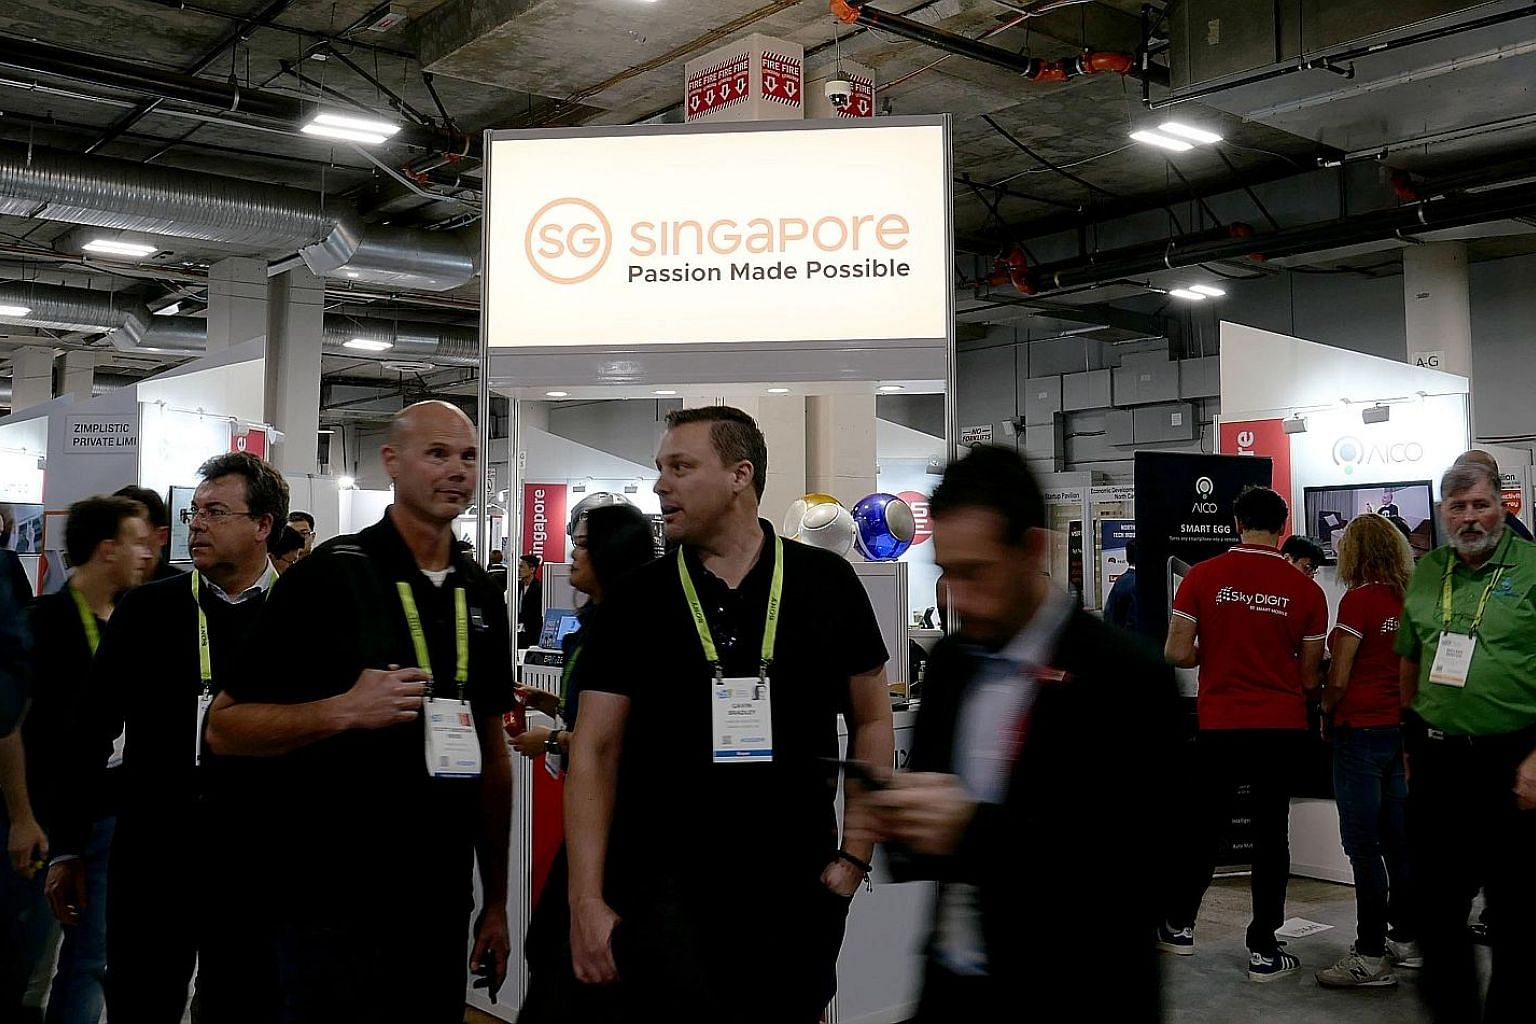 Nine Singapore start-ups showcased their products at the Singapore Pavilion at CES 2019 located in Eureka Park, a place for start-ups to get funding and partnerships. The start-ups there have to meet requirements such as being a first-time exhibitor